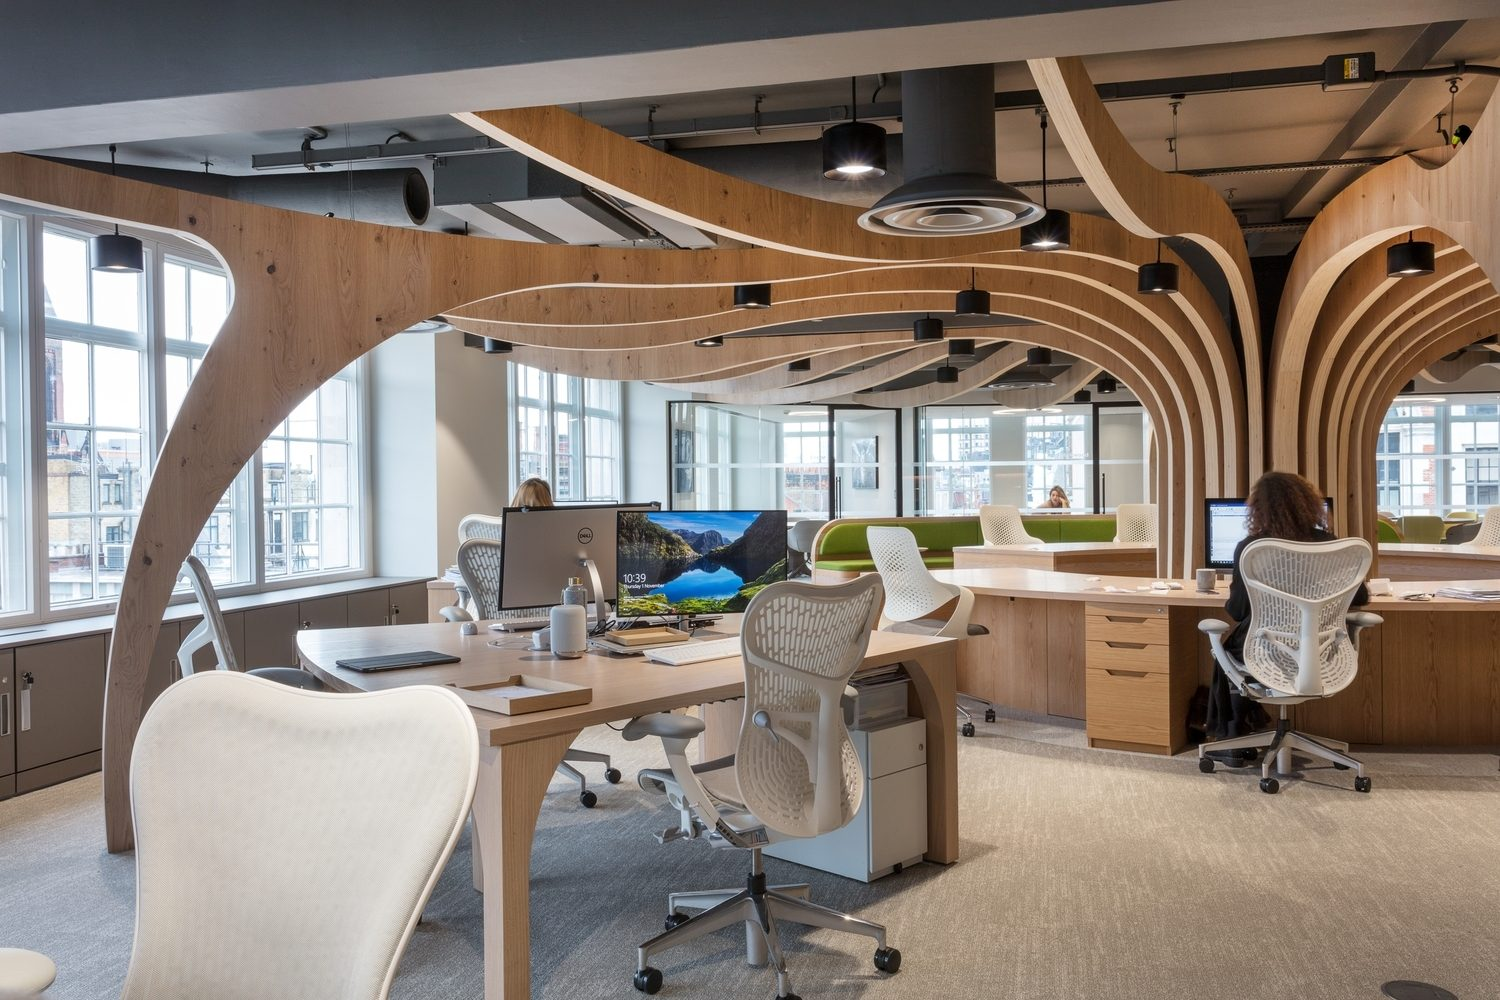 Workplace designed with curved natural wood